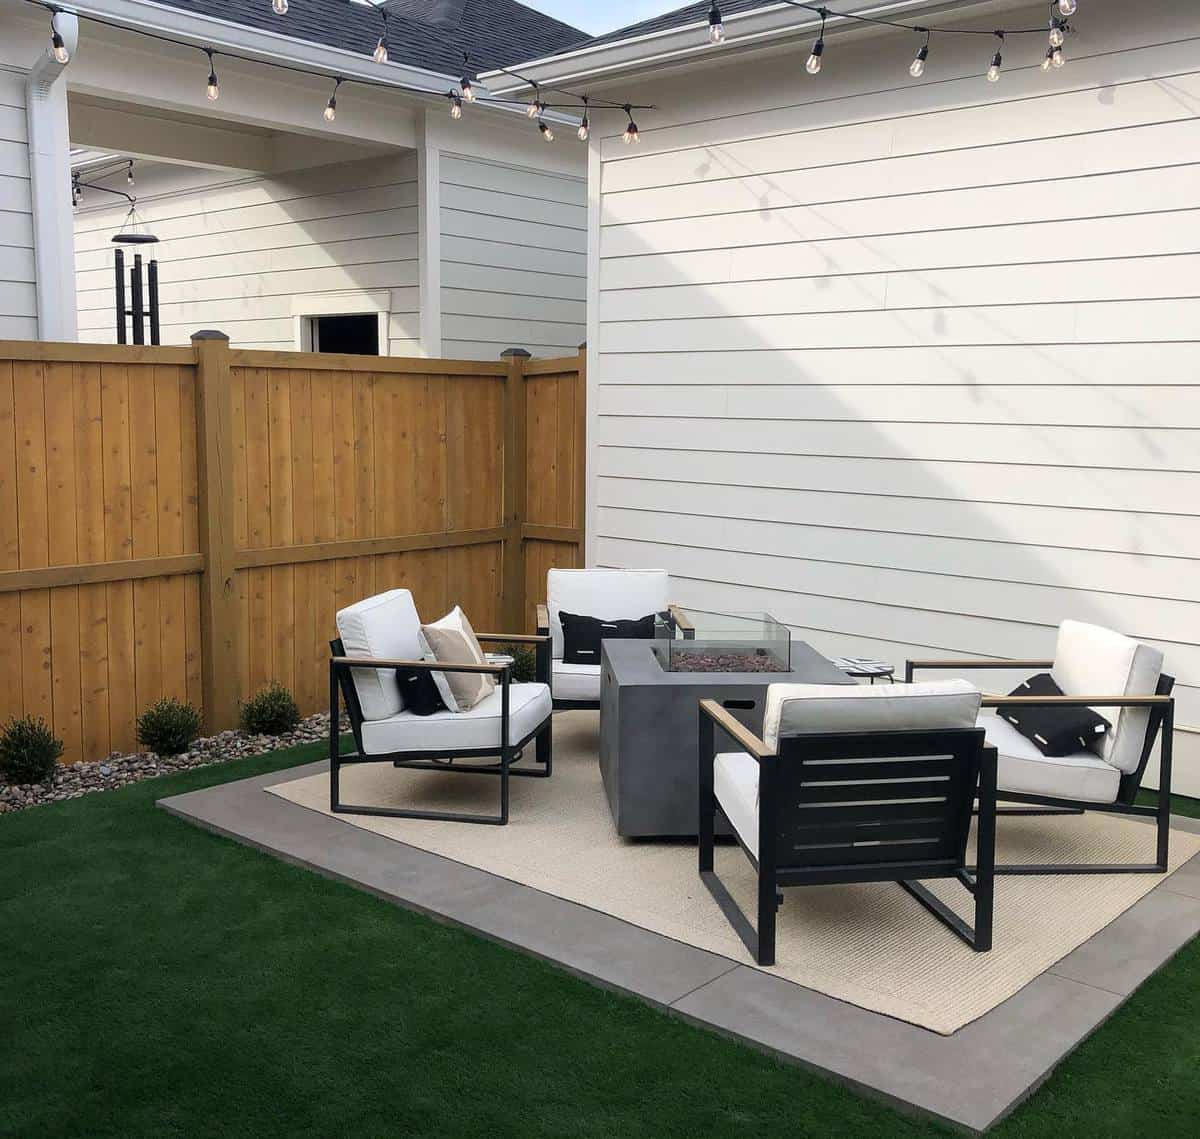 Artificial Turf Grass Free Yard Ideas -a_service_for_every_season